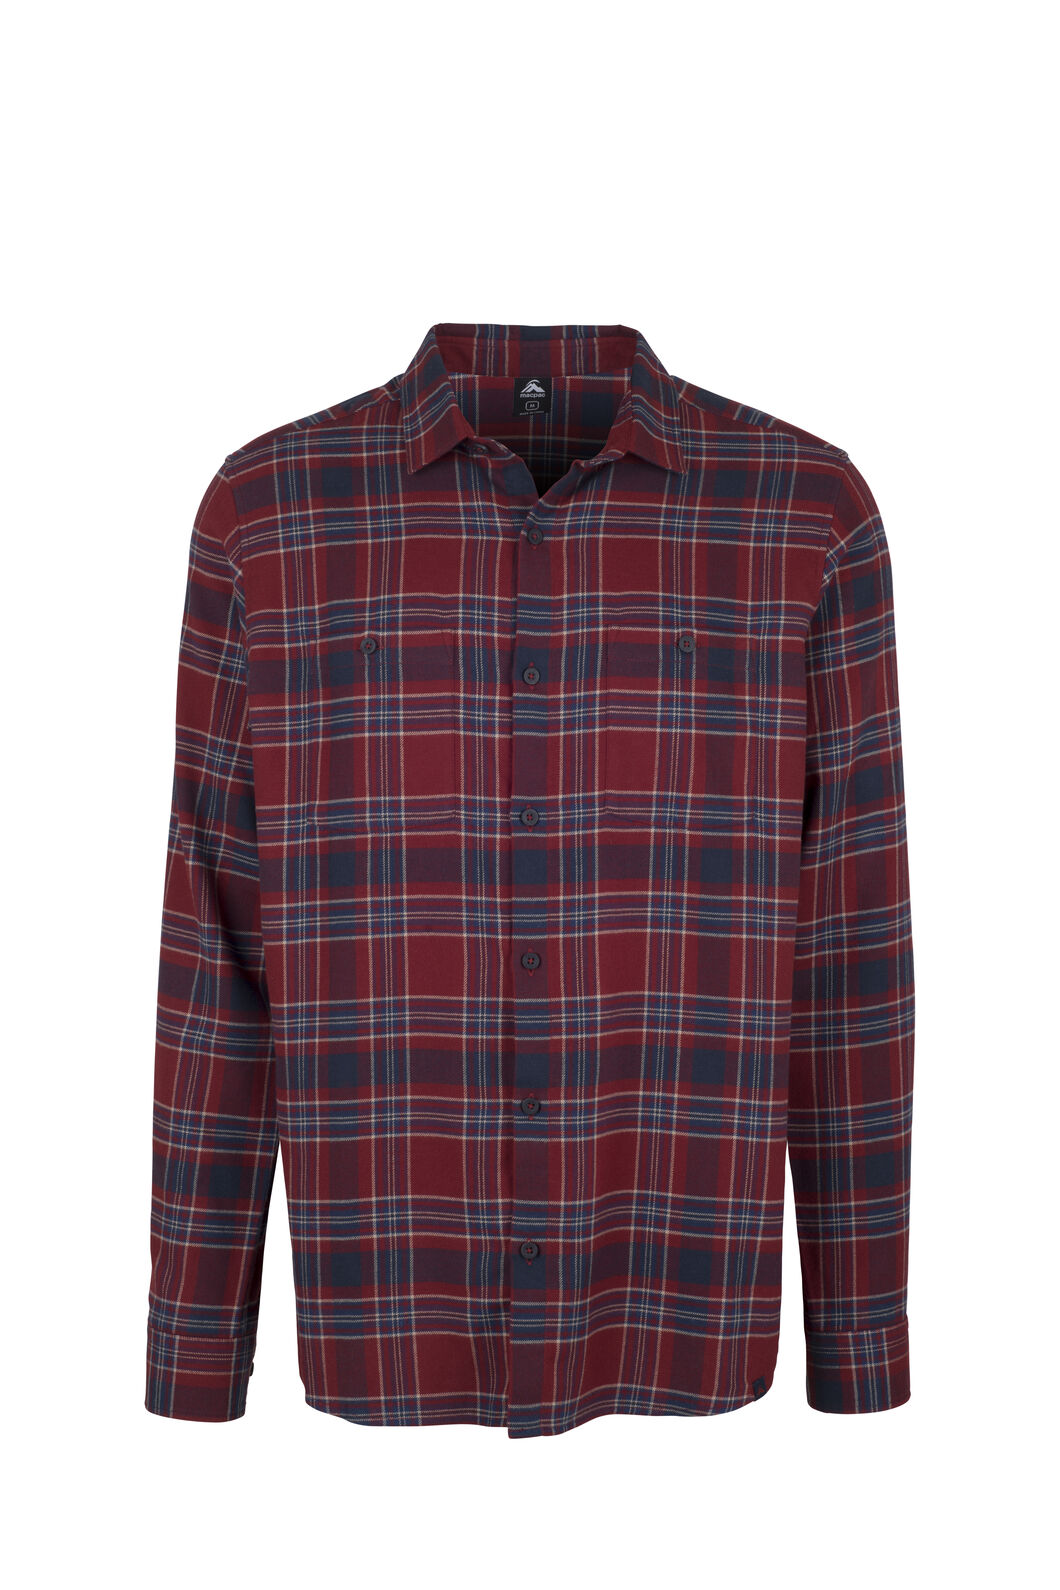 Macpac Porters Flannel Shirt - Men's, Syrah/Red Ochre, hi-res